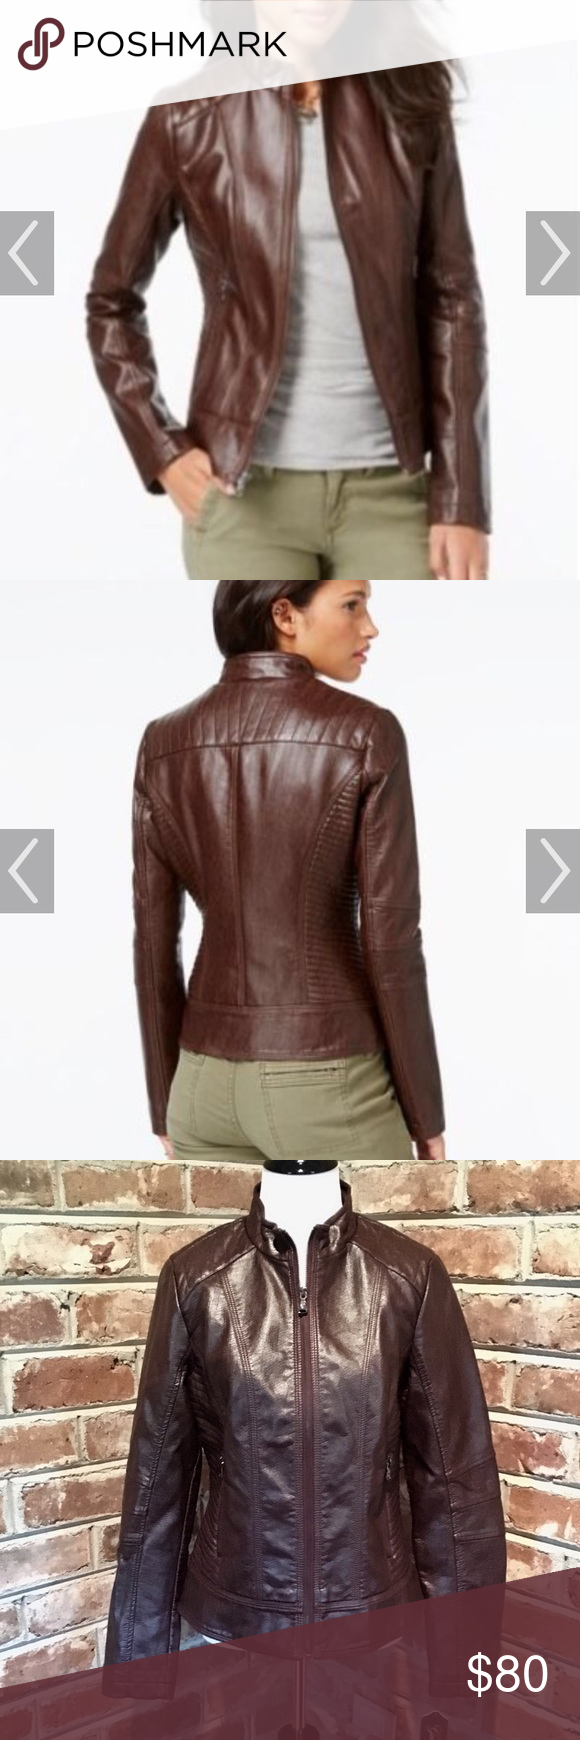 Guess Quilted Detail Faux Leather Moto Jacket Clothes Design Fashion Design Faux Leather Moto Jacket [ 1740 x 580 Pixel ]